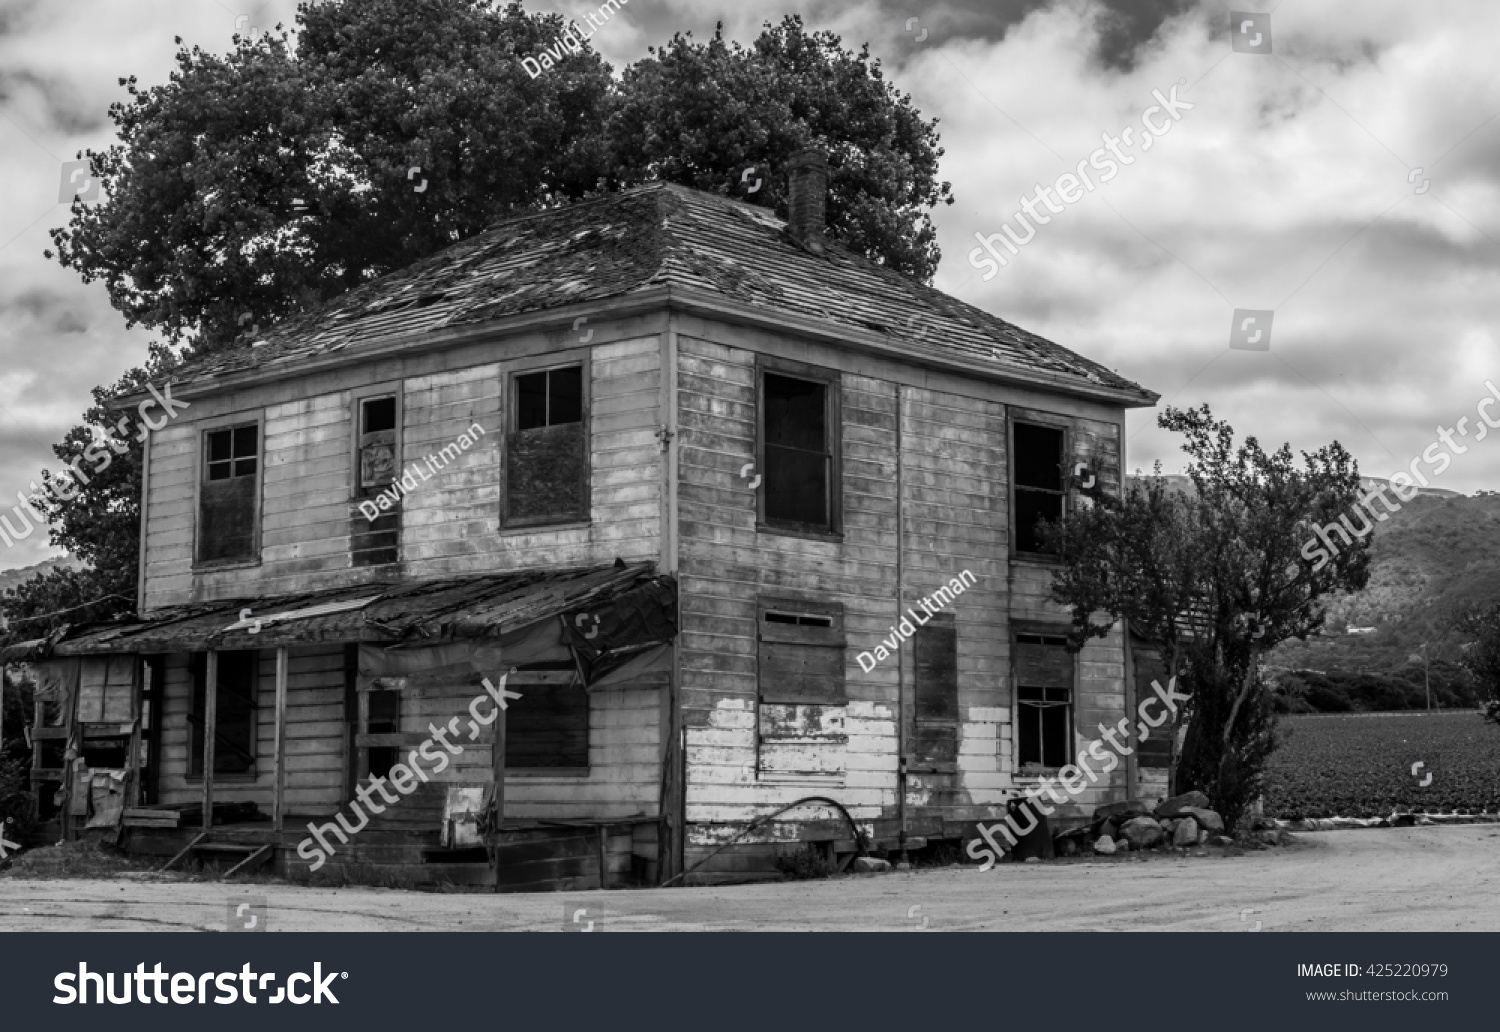 Old abandoned farm house, black and white in Salinas Valley, California.